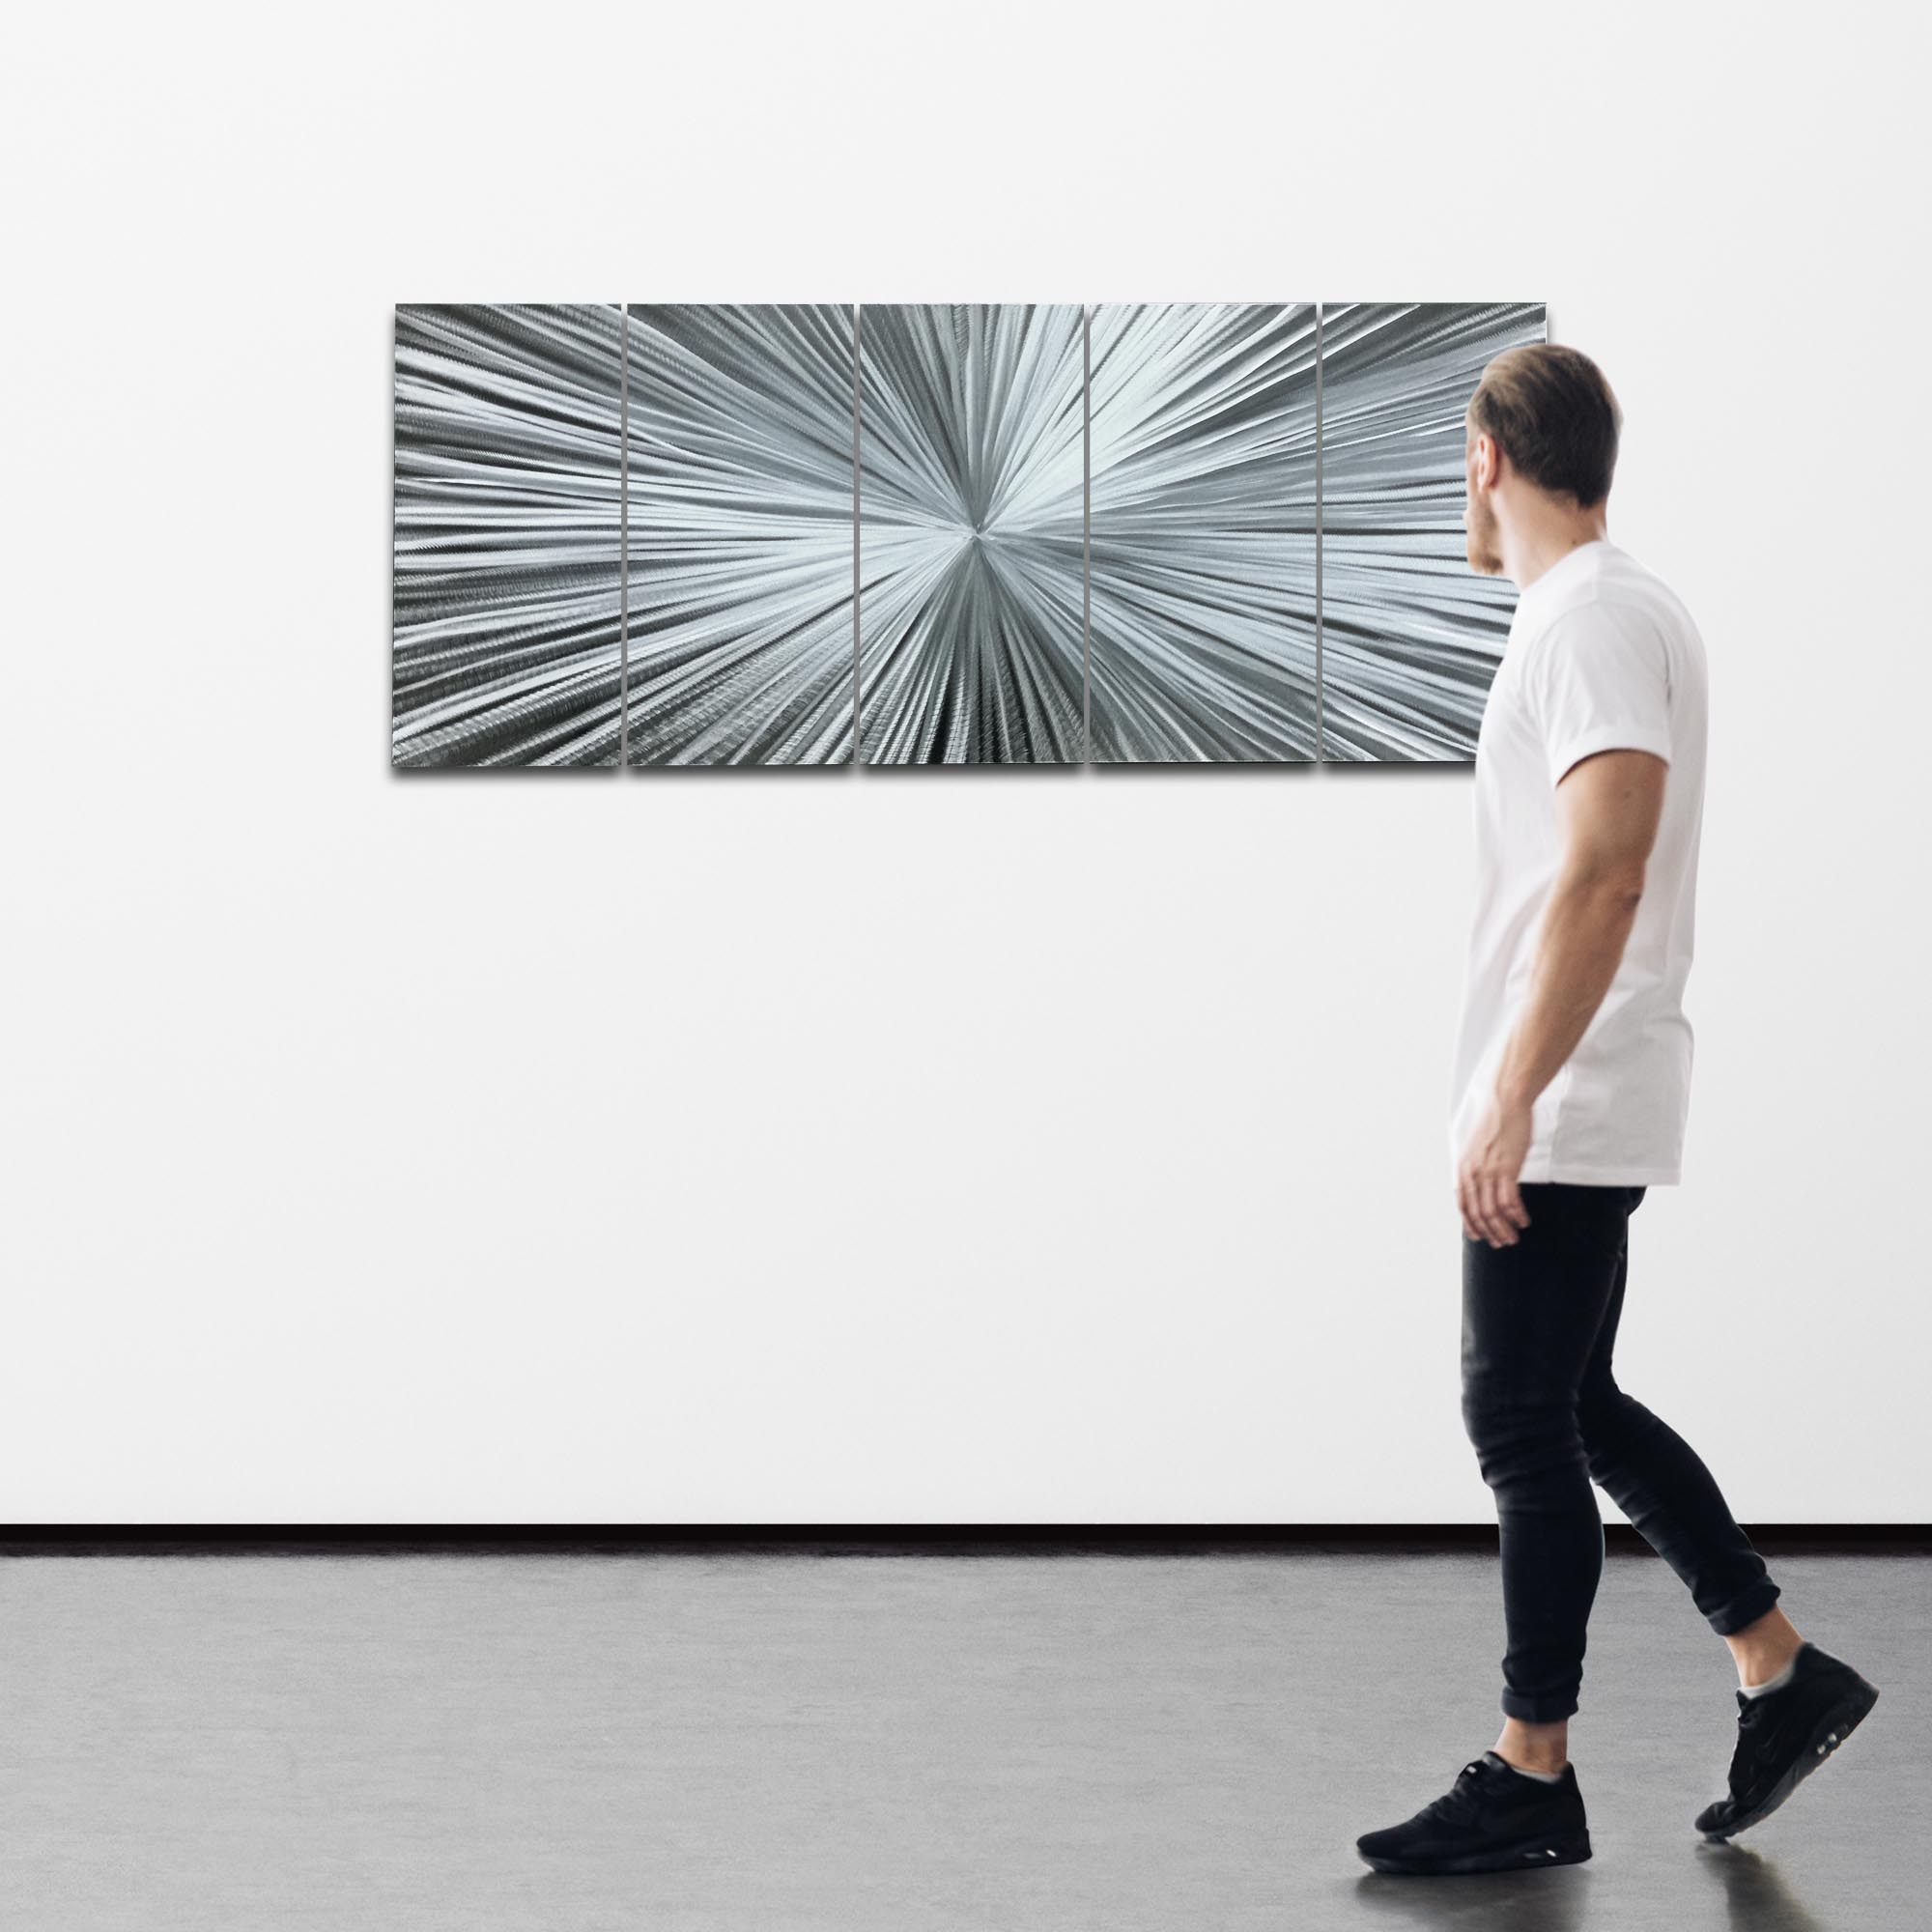 The Light by Helena Martin - Starburst Metal Art on Natural Aluminum - Image 3